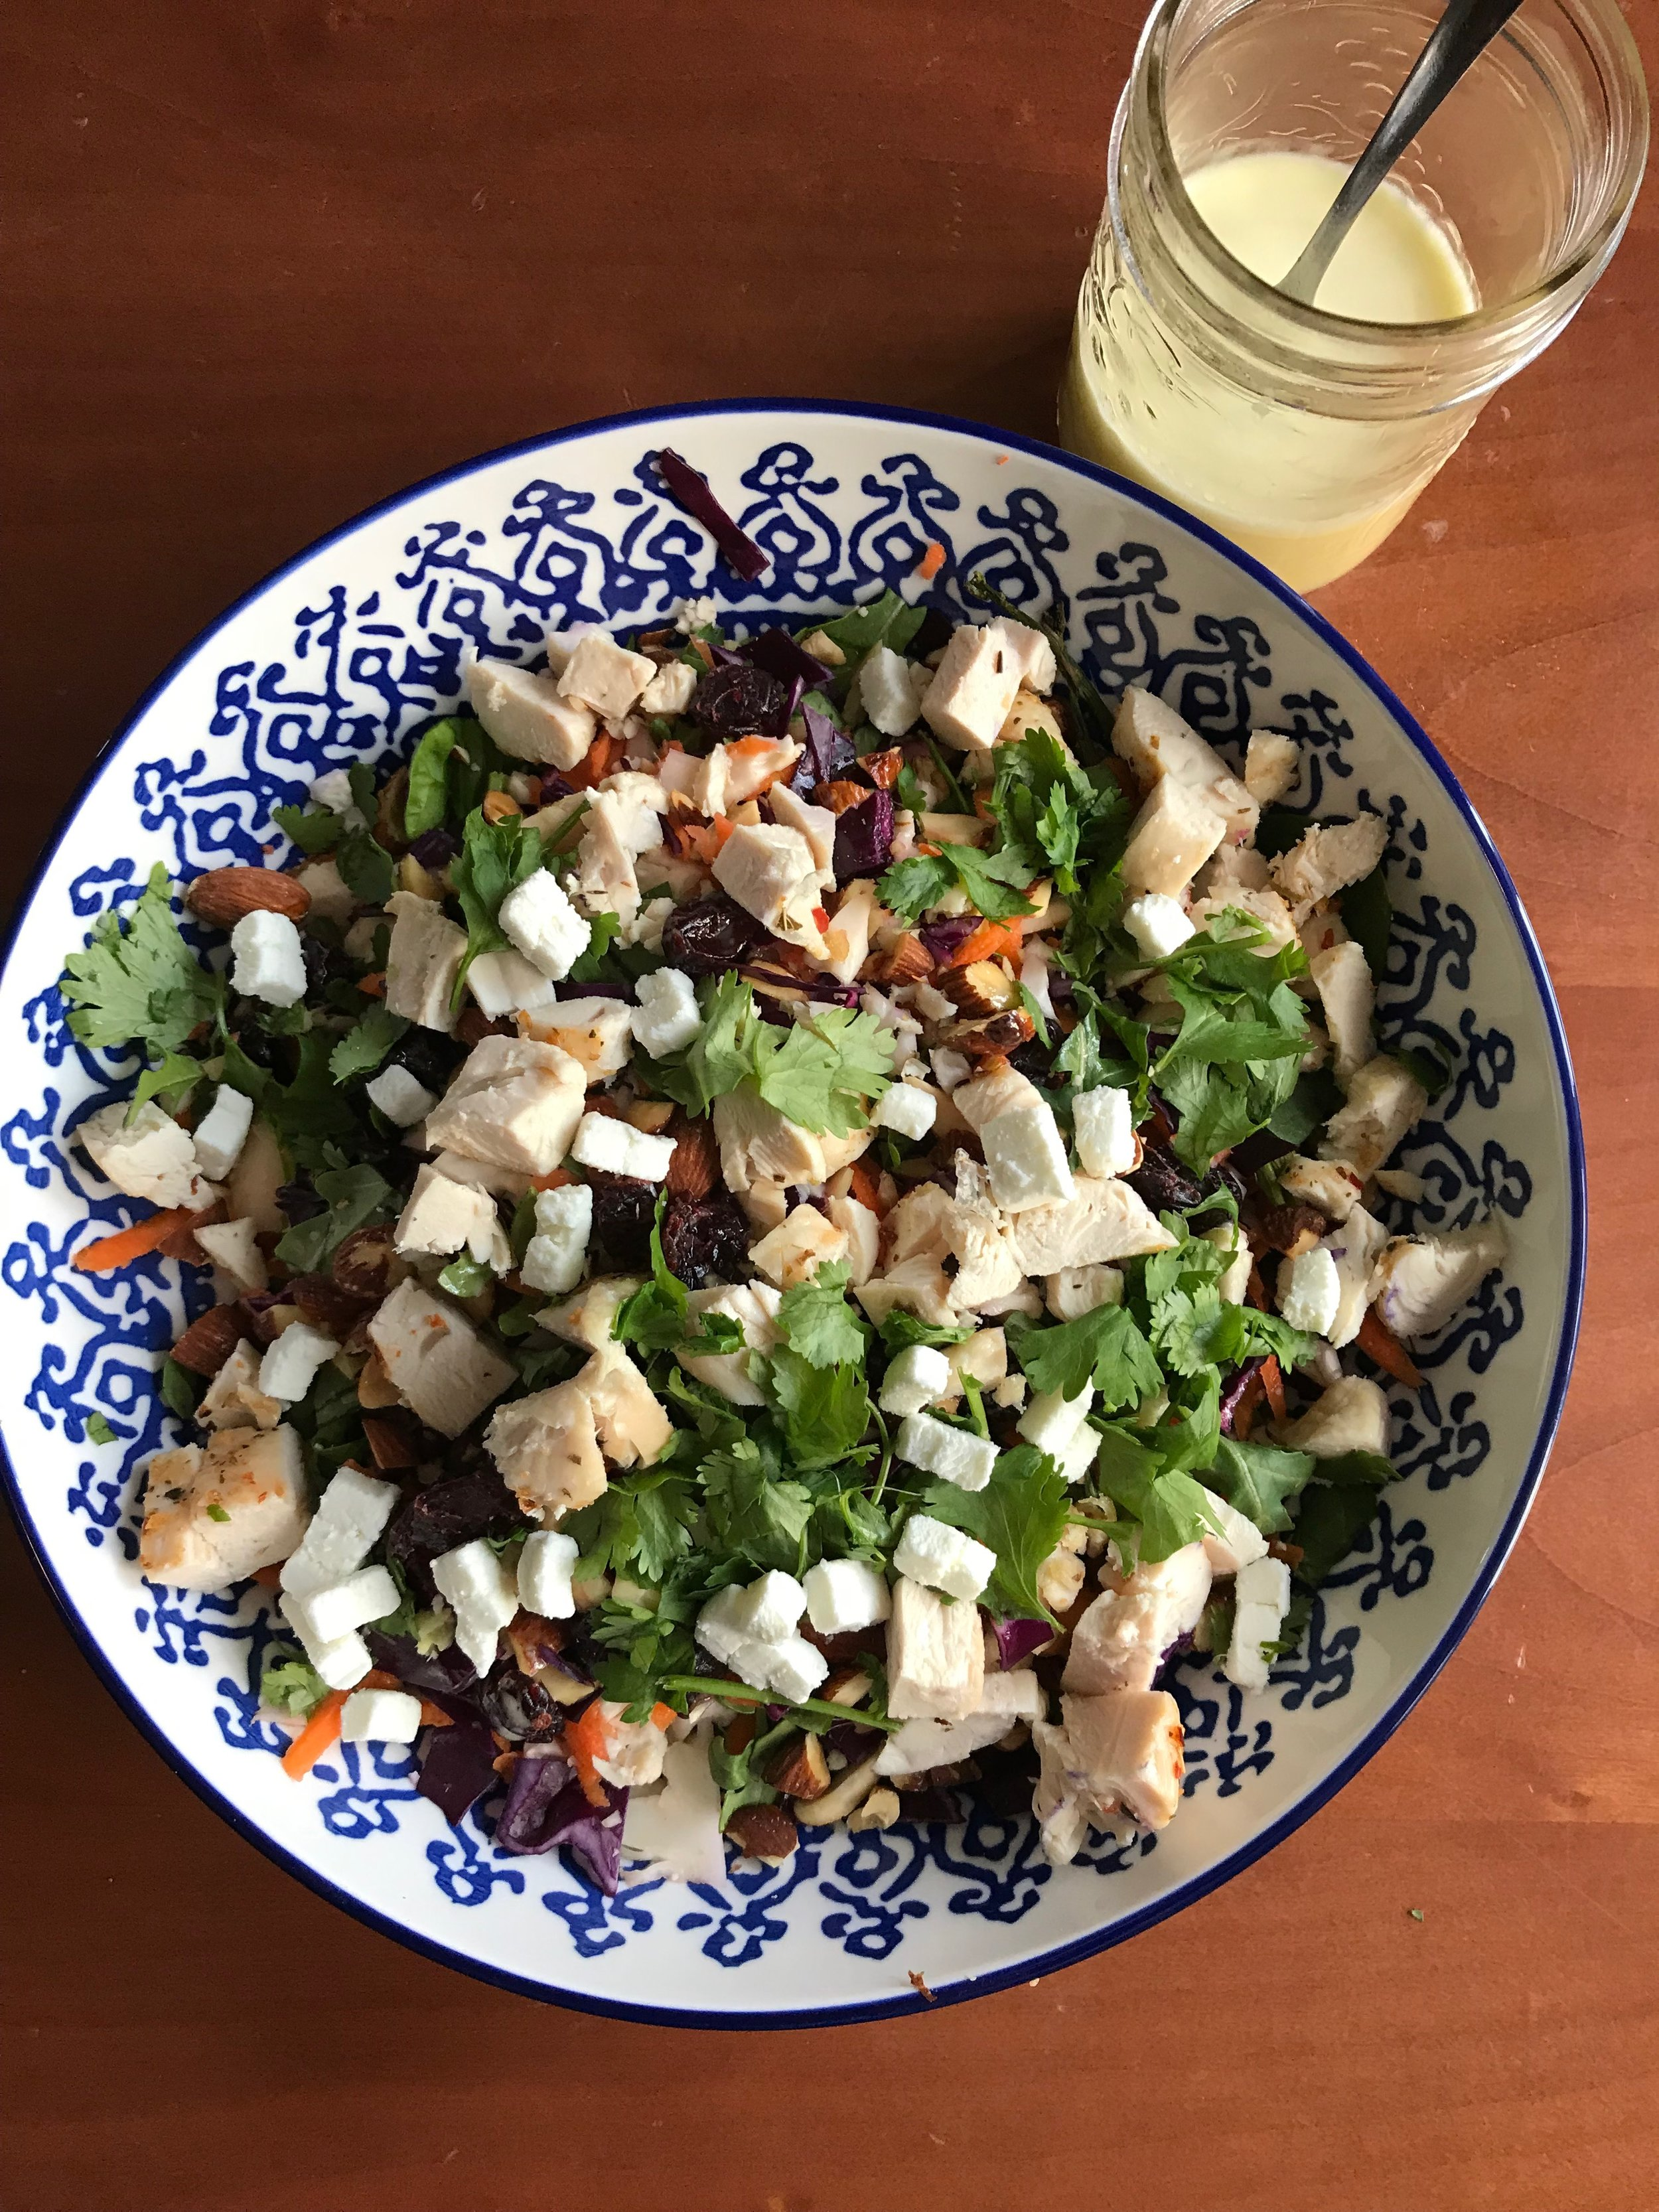 Apple & Almond Crunch Salad with Chicken and Goat Cheese Variation